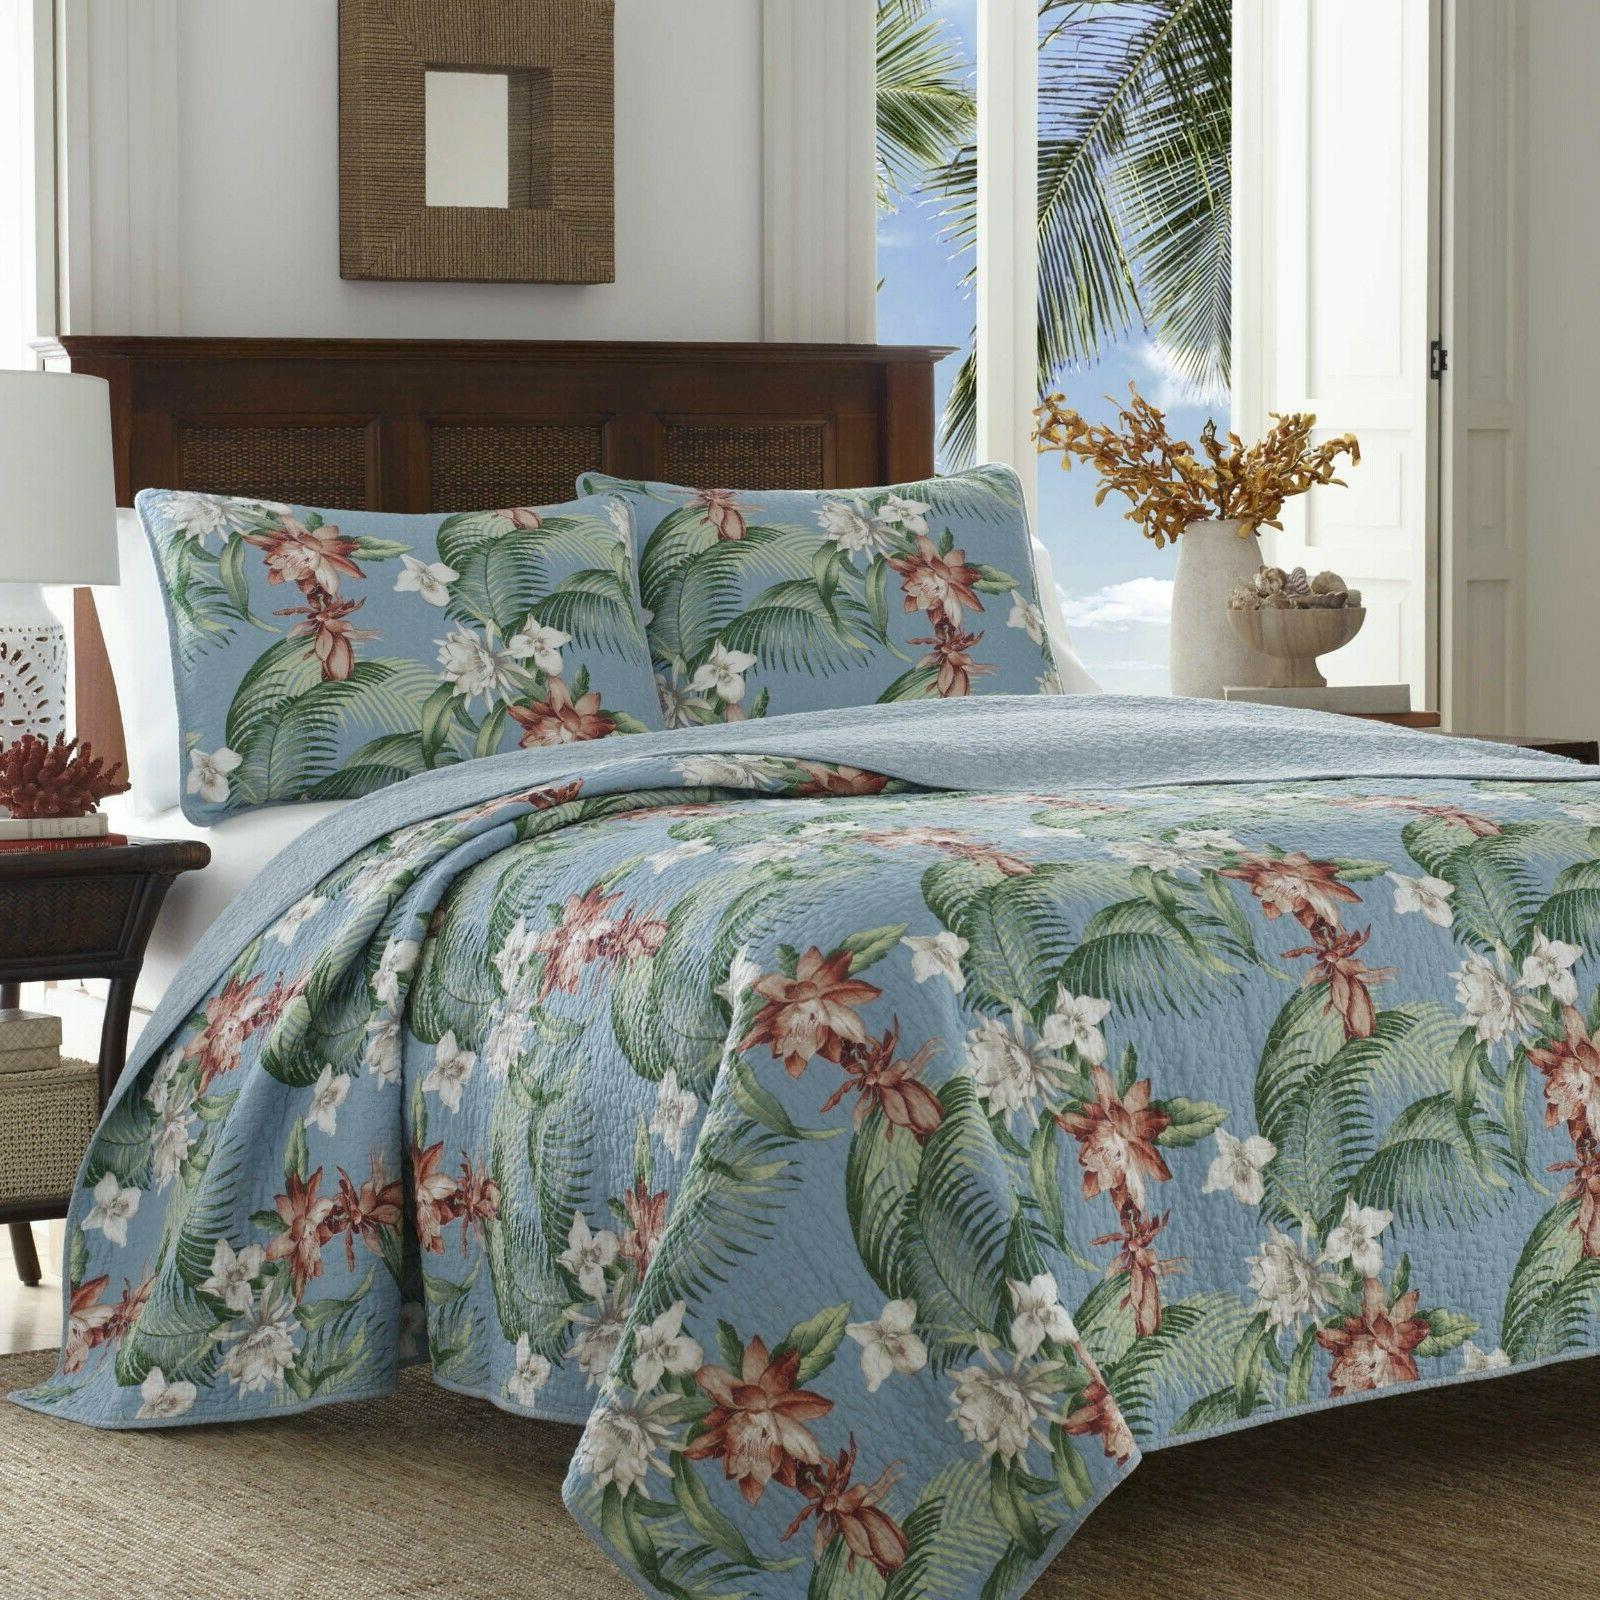 New Tommy Bahama Aqua King Quilt Shams Incl $240